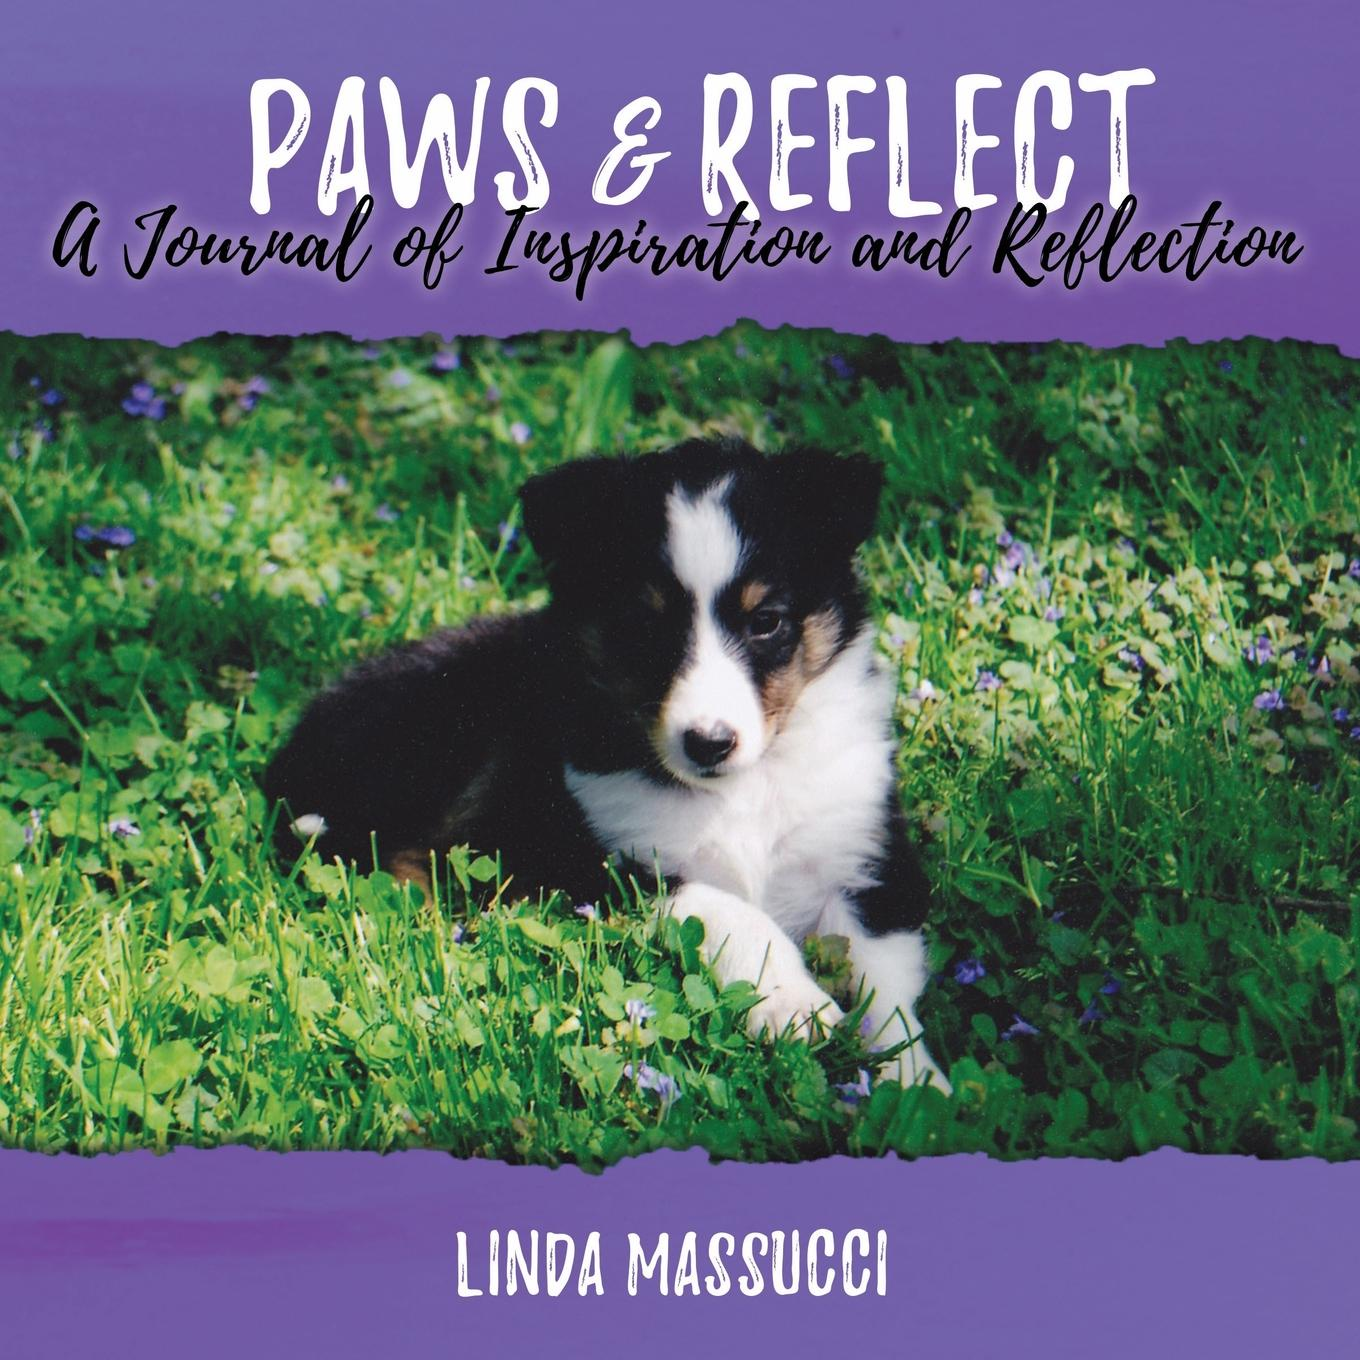 Linda Massucci Paws and Reflect. A Journal of Inspiration and Reflection maggie hamand creative writing exercises for dummies page 6